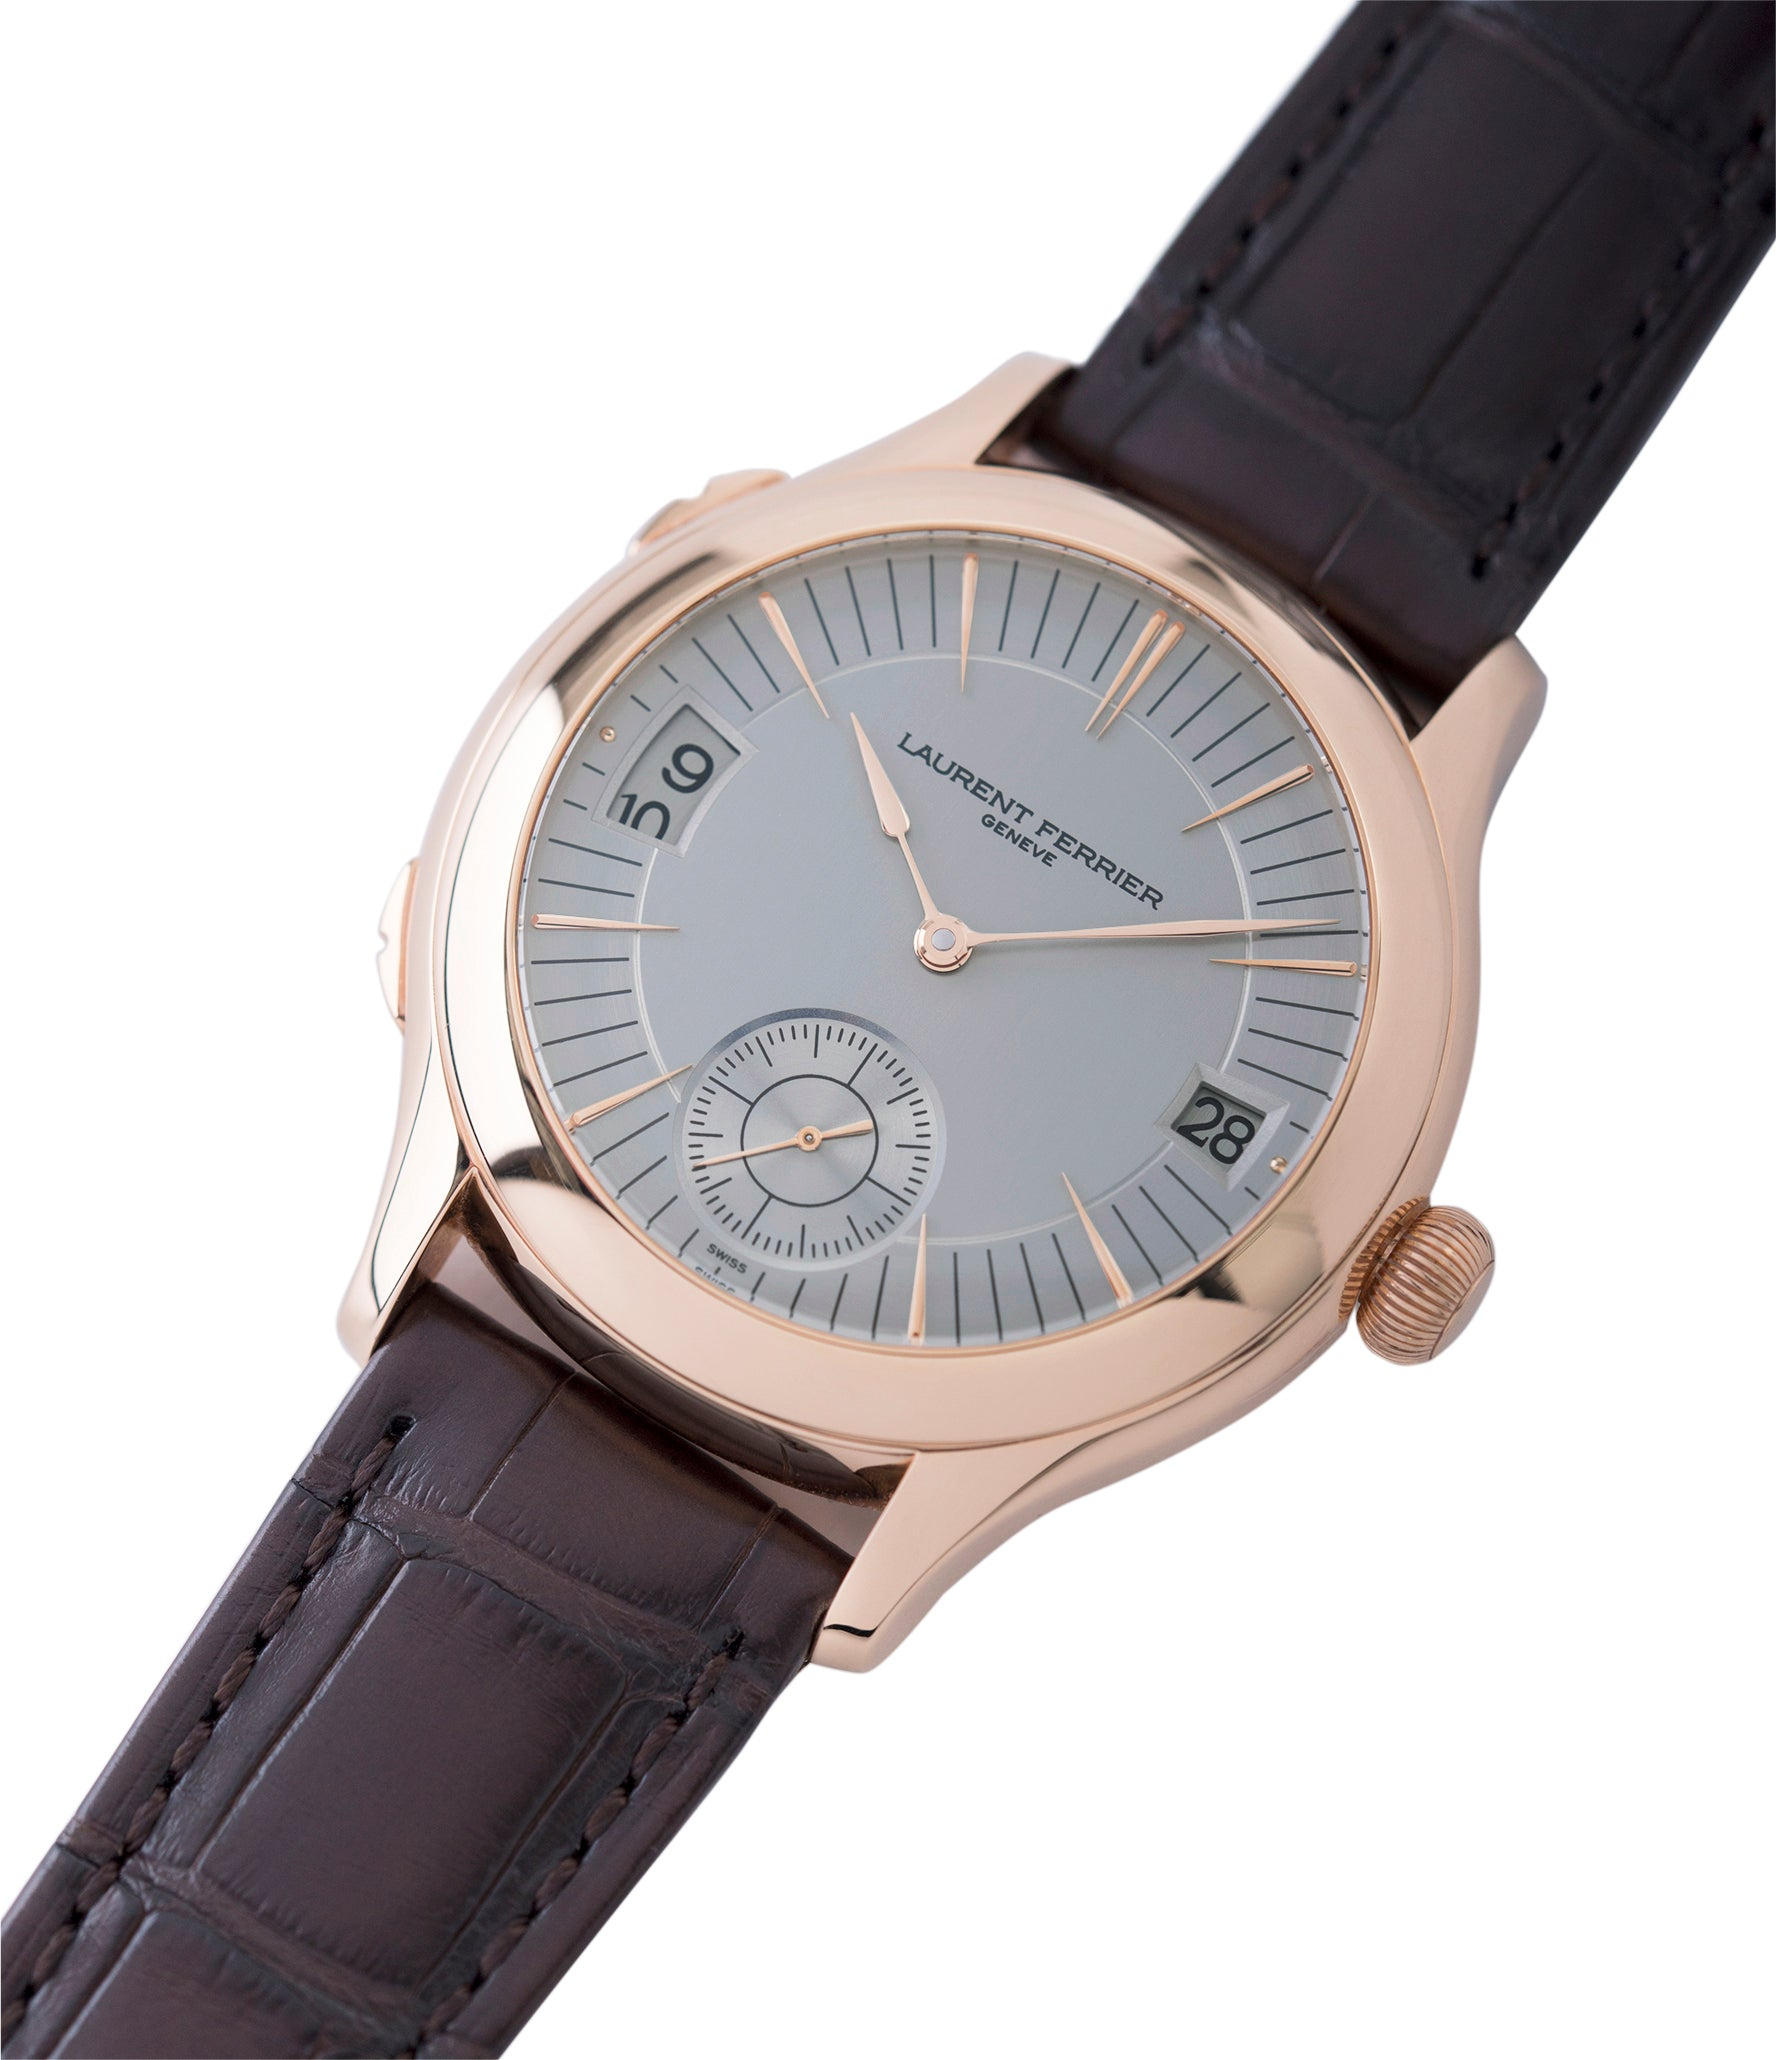 shop Laurent Ferrier Galet Traveller Micro Rotor LF 230.01 rose gold watch additional prototype dial for sale online at A Collected Man London UK approved reseller of preowned independent watchmakers